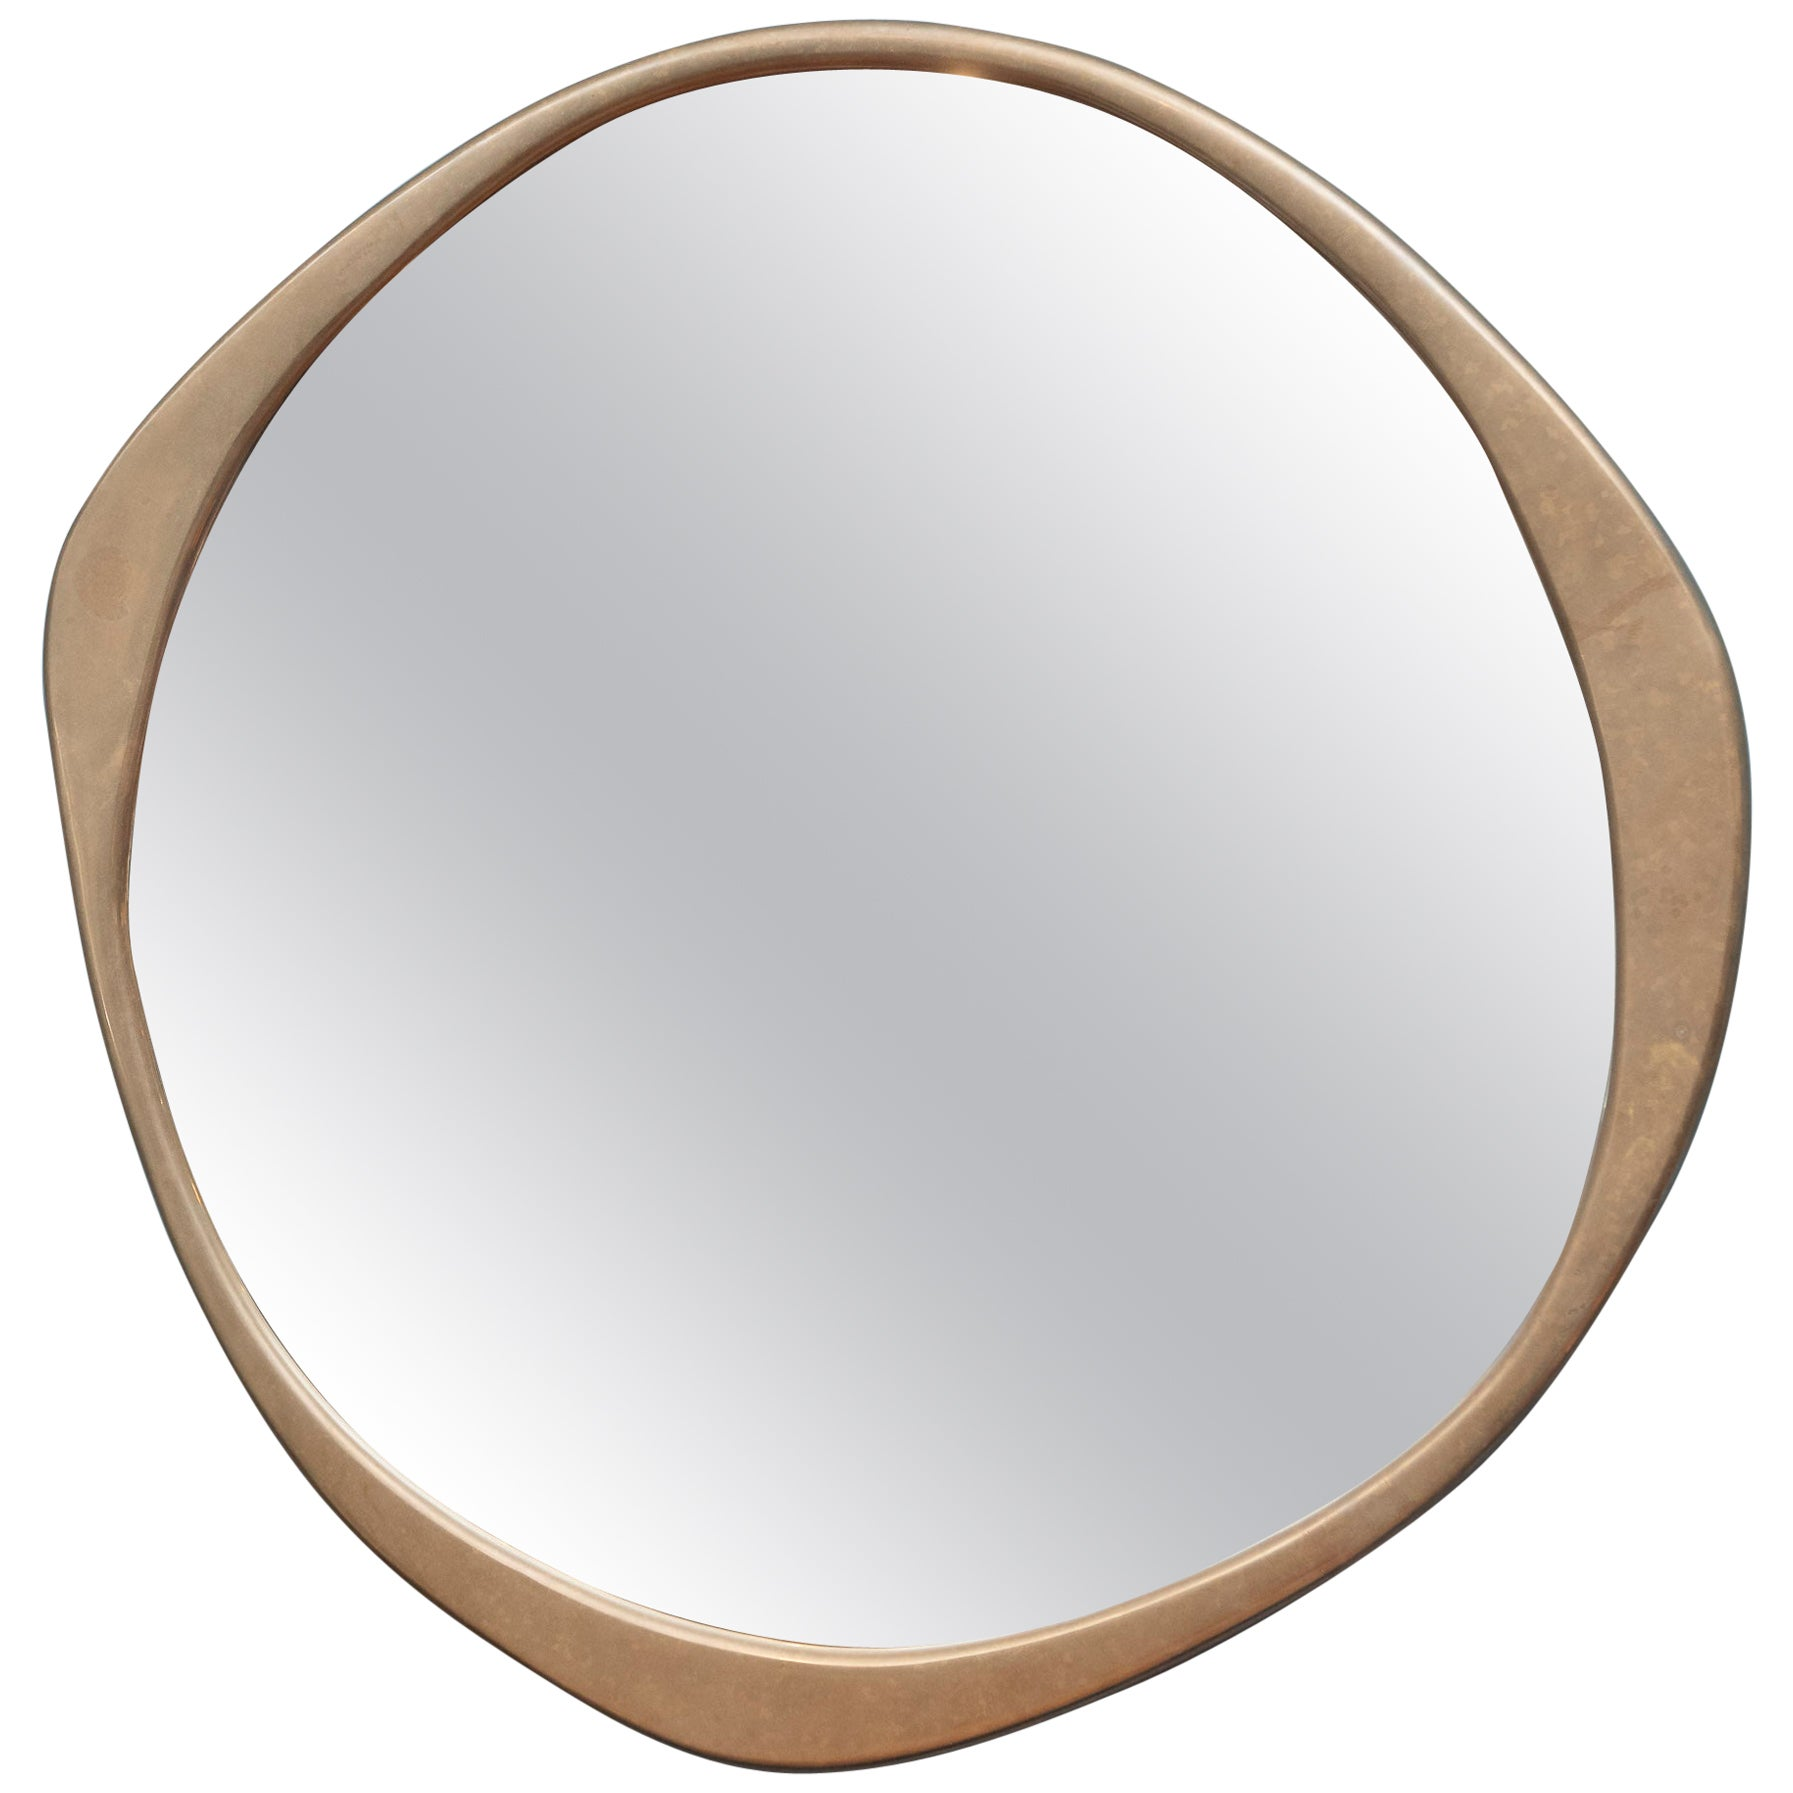 A.Cepa Bronze Patinated Large Wall Mirror